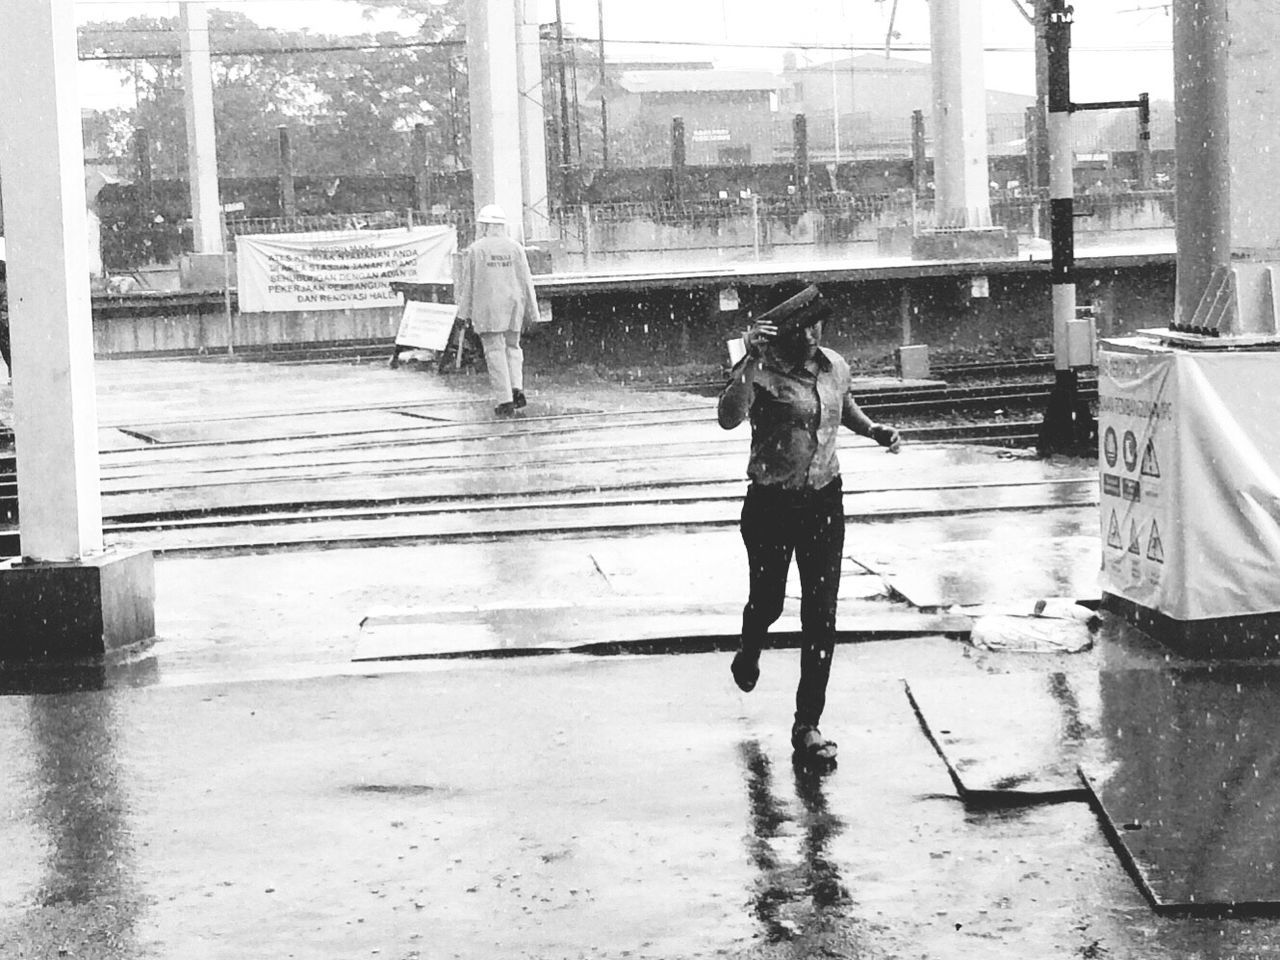 Running from the rain. Rain Streetphotography Blackandwhite Mobilephotography Train Station Jakarta